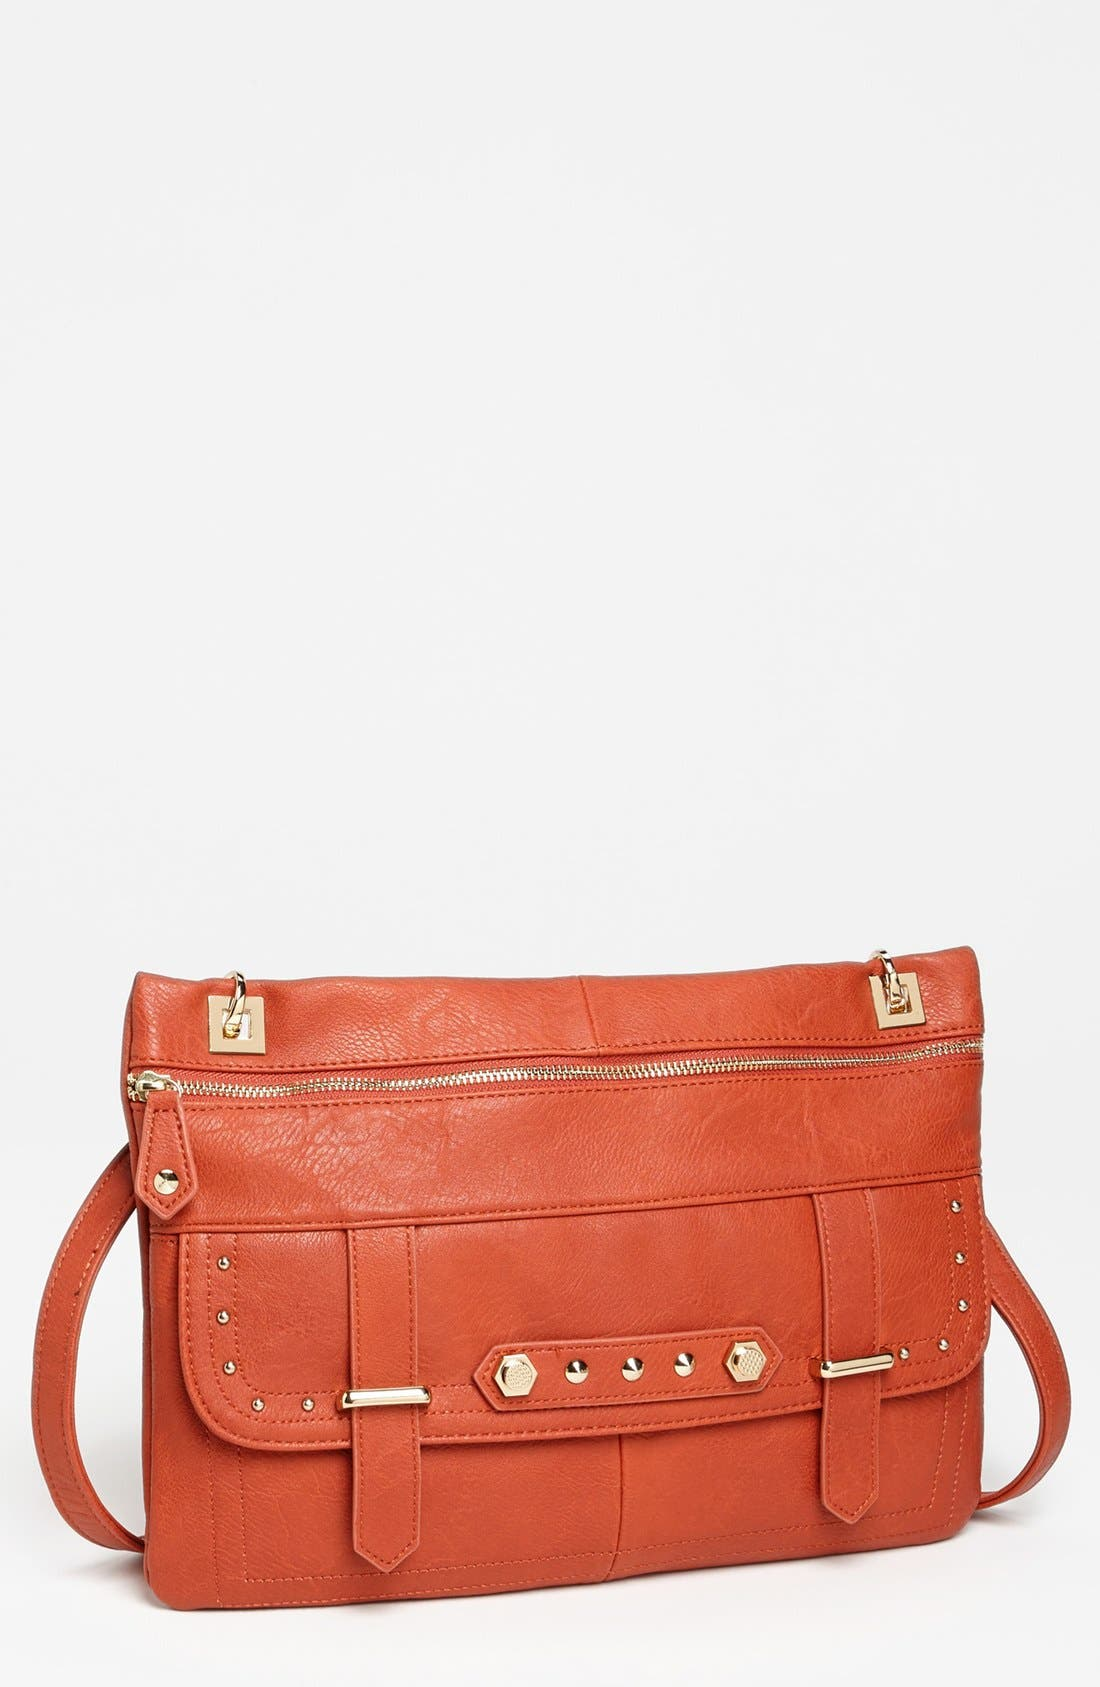 Alternate Image 1 Selected - Danielle Nicole 'Collette' Shoulder Bag